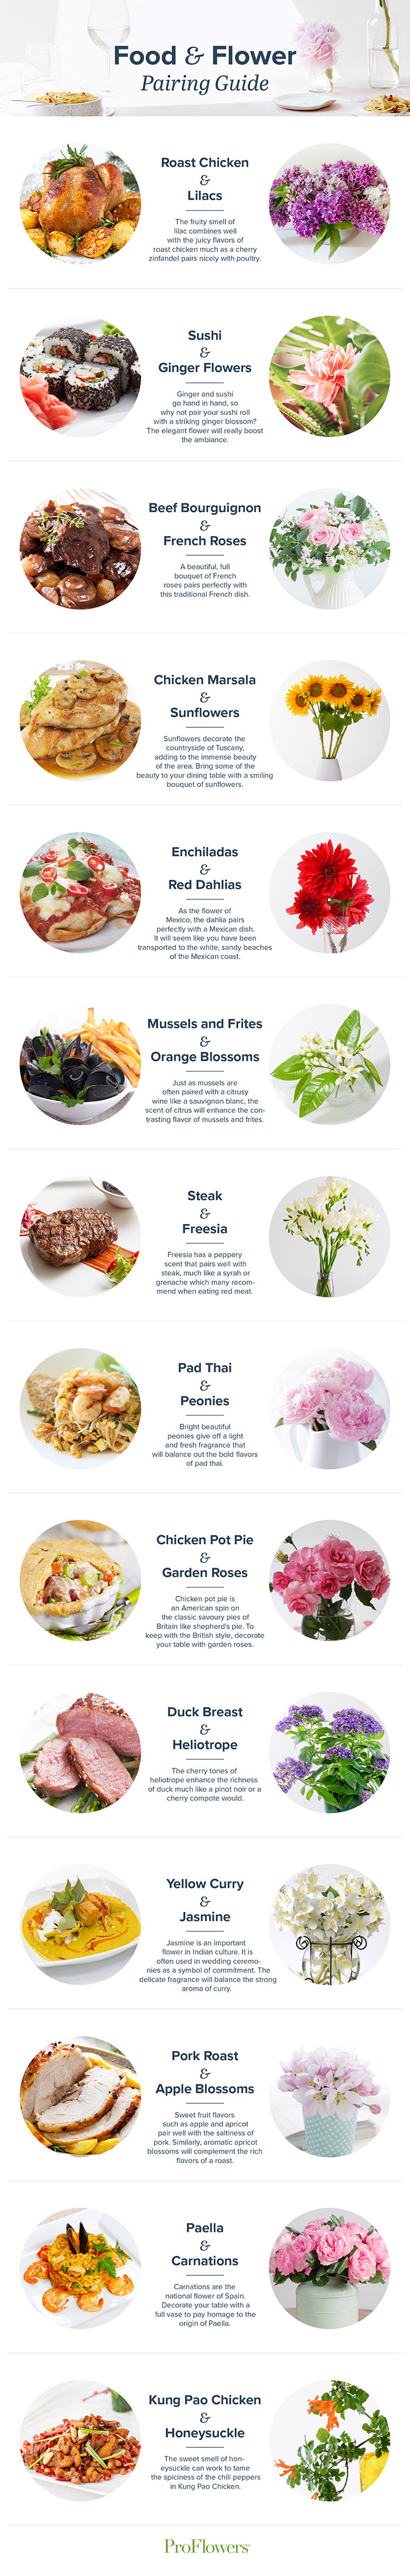 food-and-flower-pairings-check-them-out